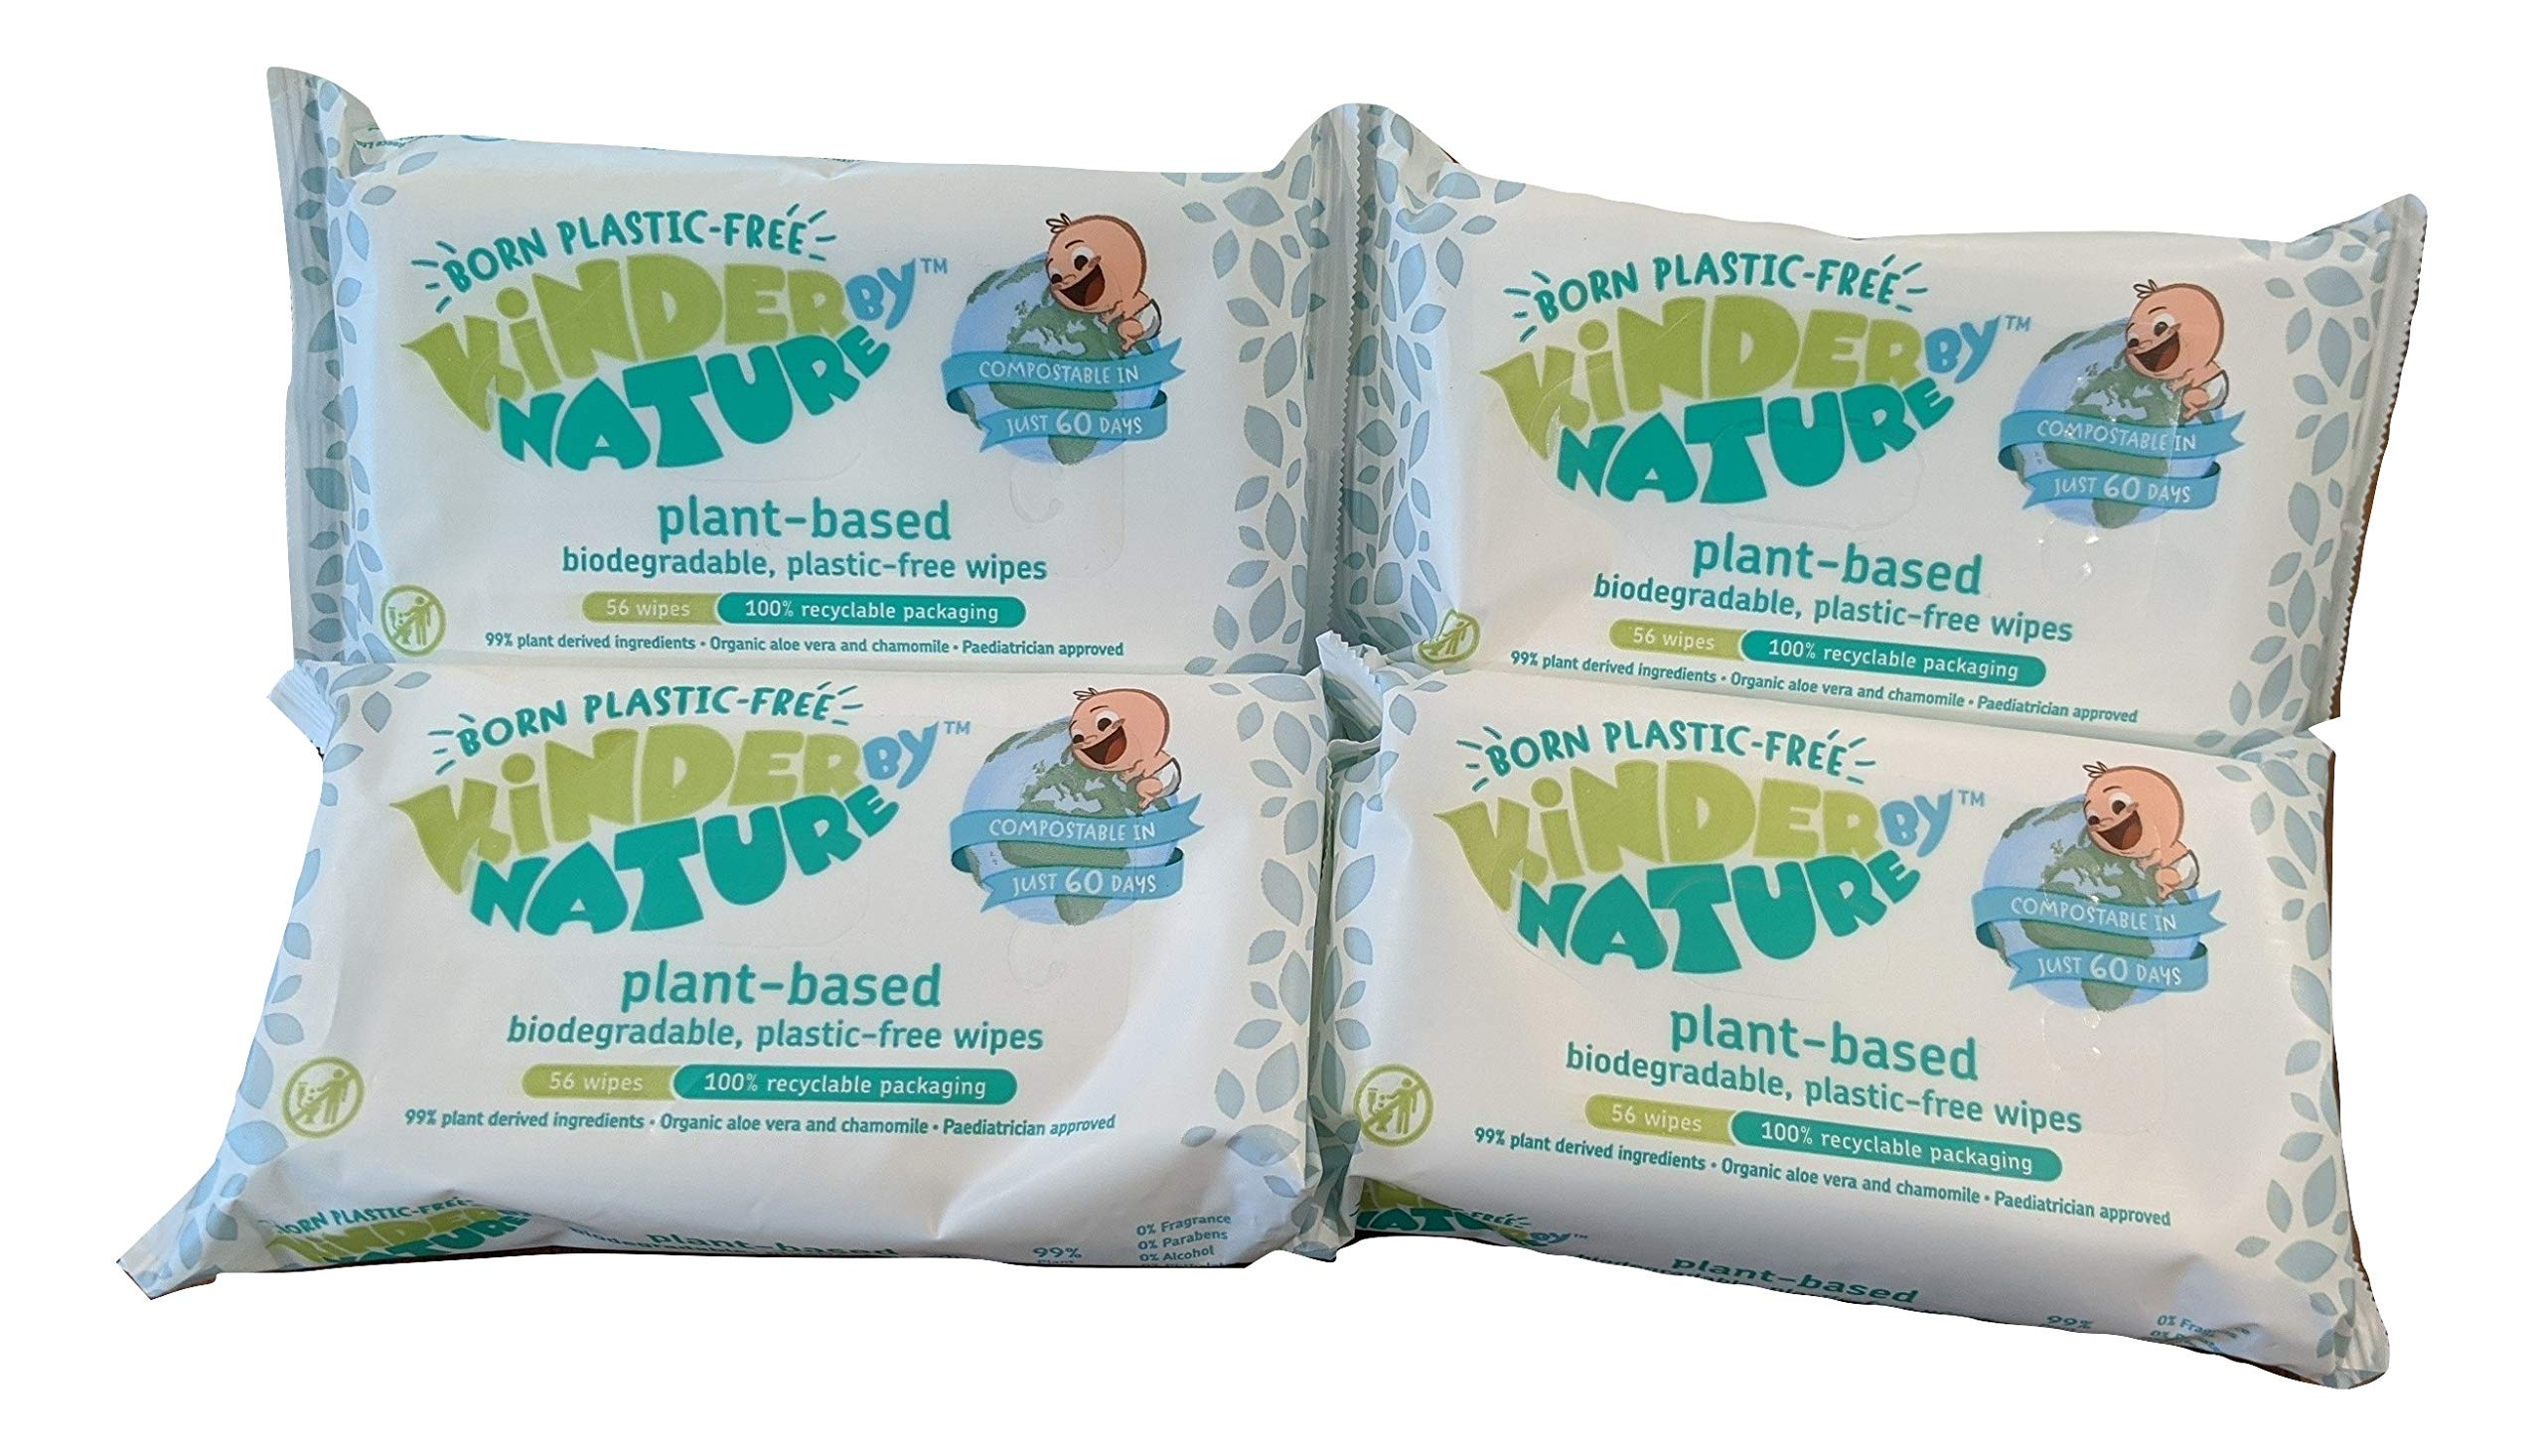 Kinder by Nature Plant Based Baby Wipes - 100% Biodegradable & Compostable, 224 Count (4 Packs of 56) - 99% Plant-Based Ingredients, 0% Plastic